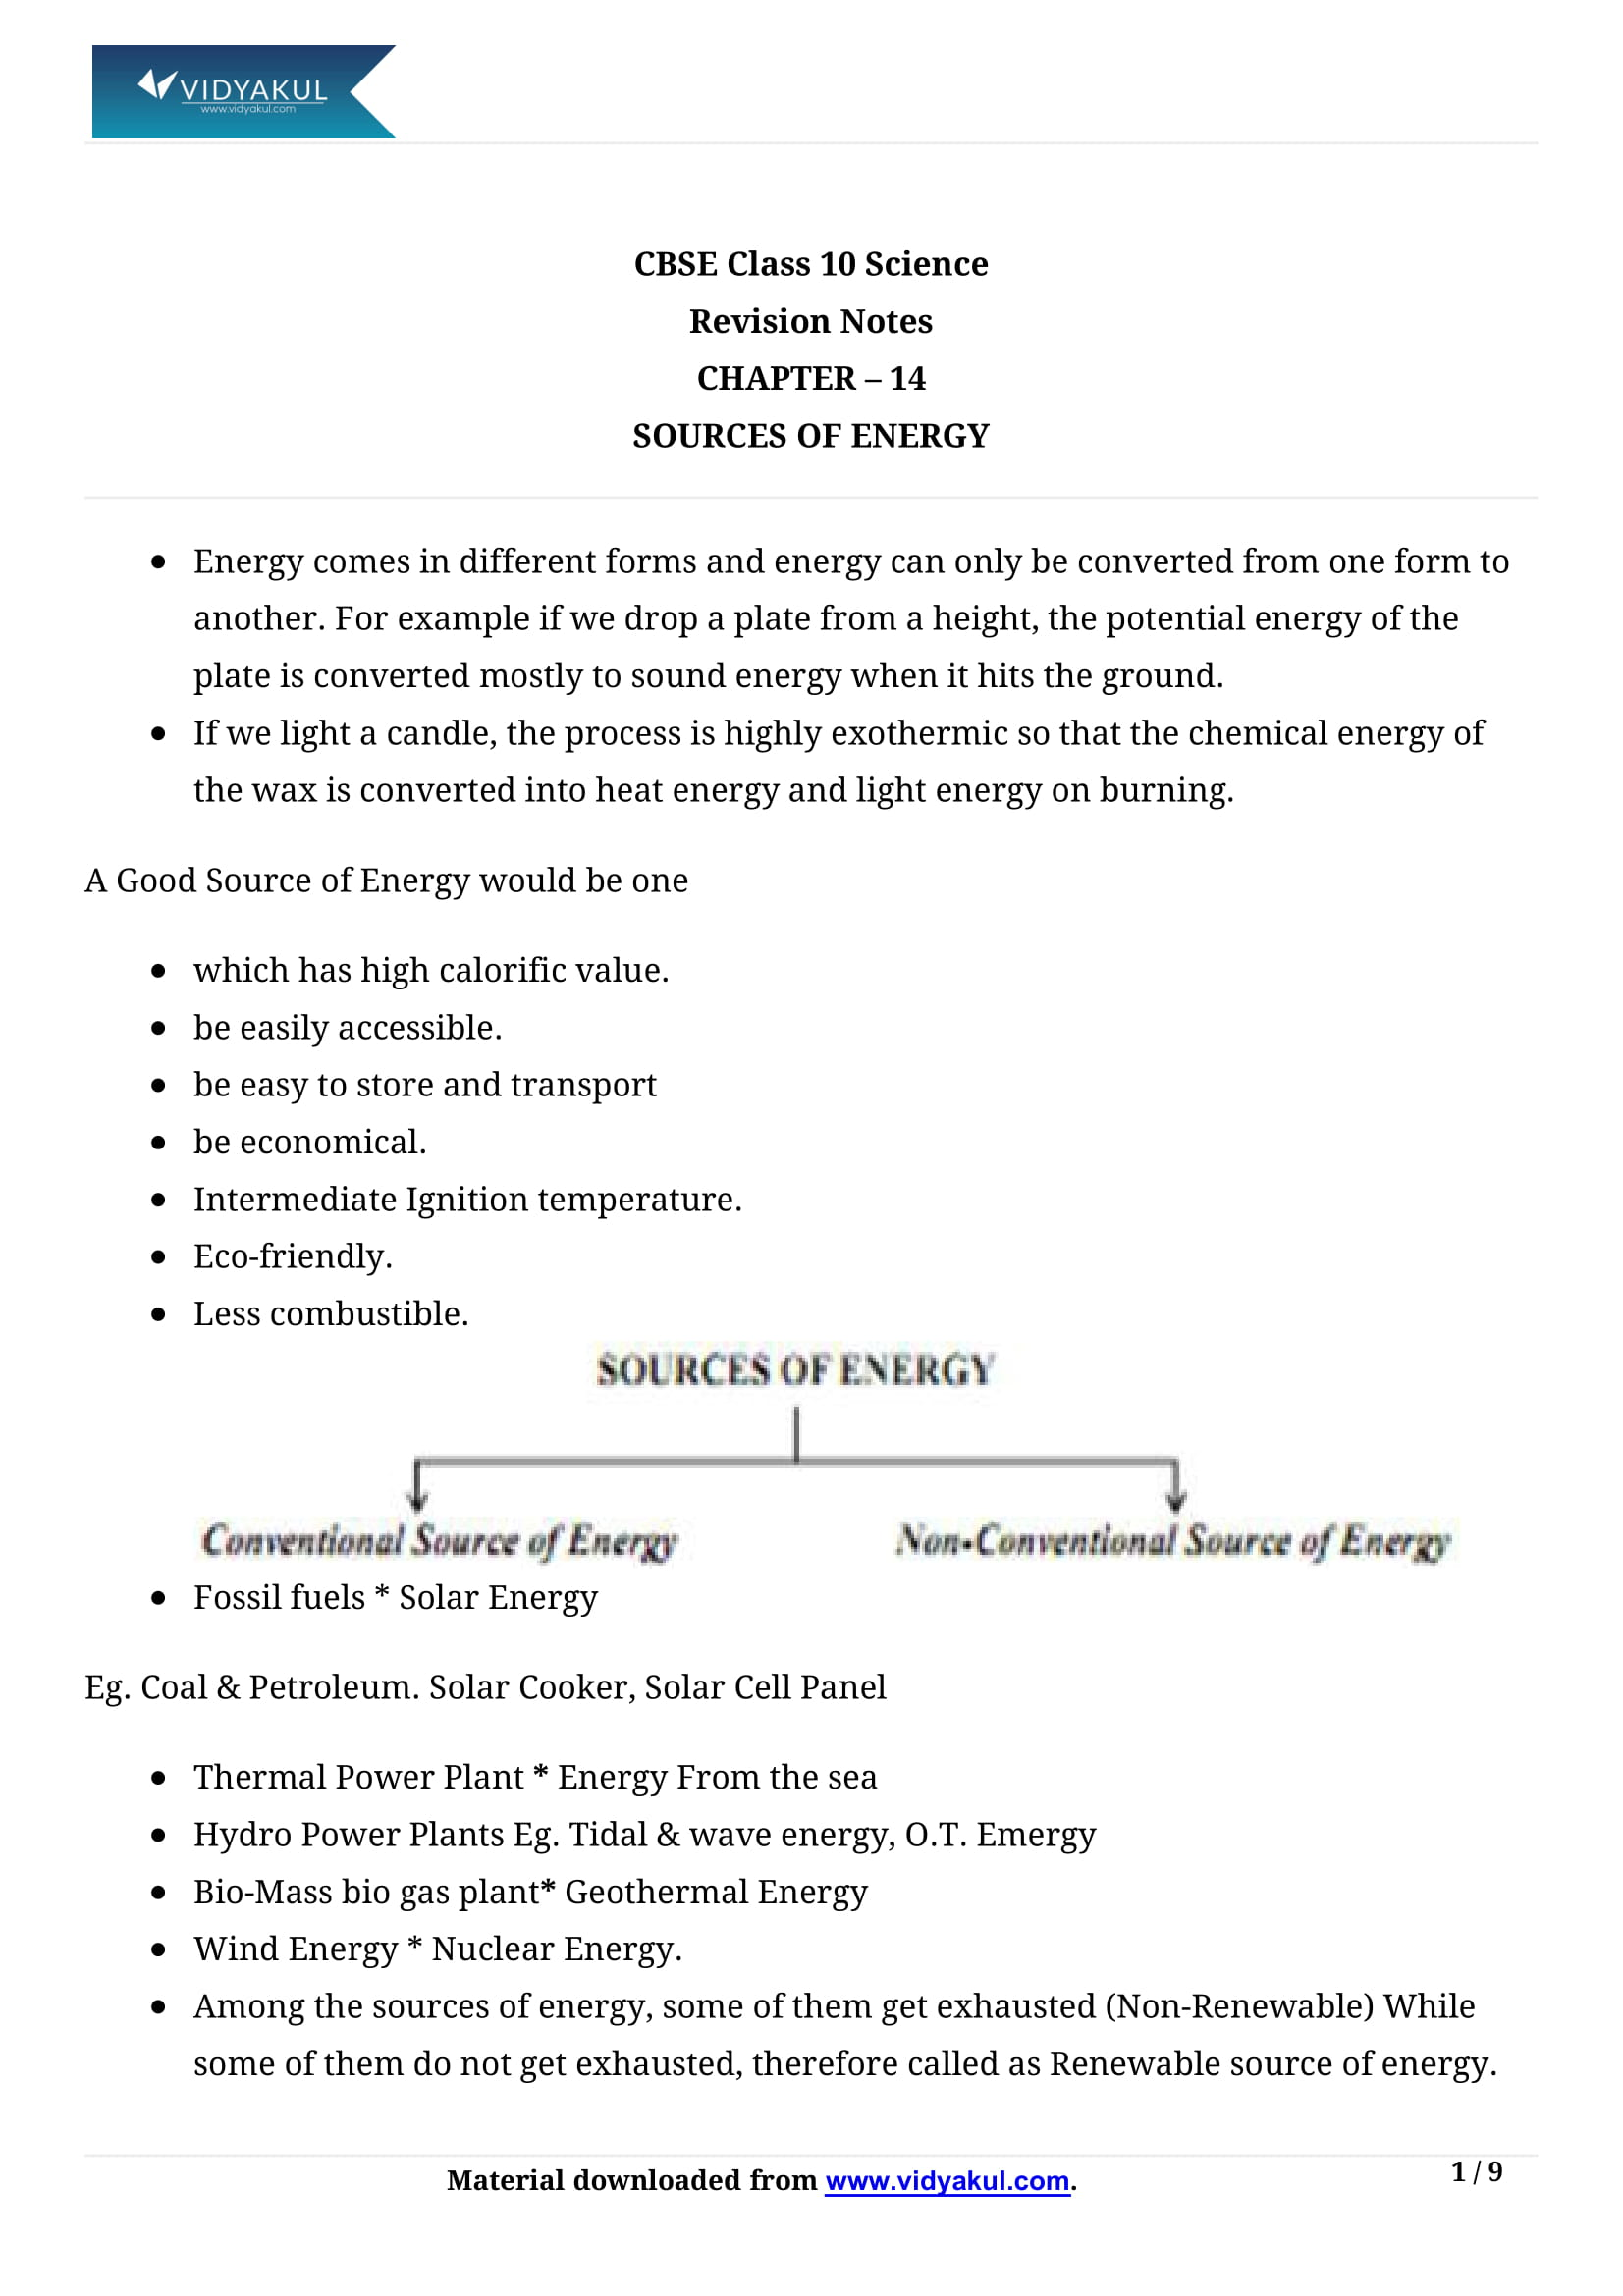 Sources of Energy Class 10 Notes | Vidyakul